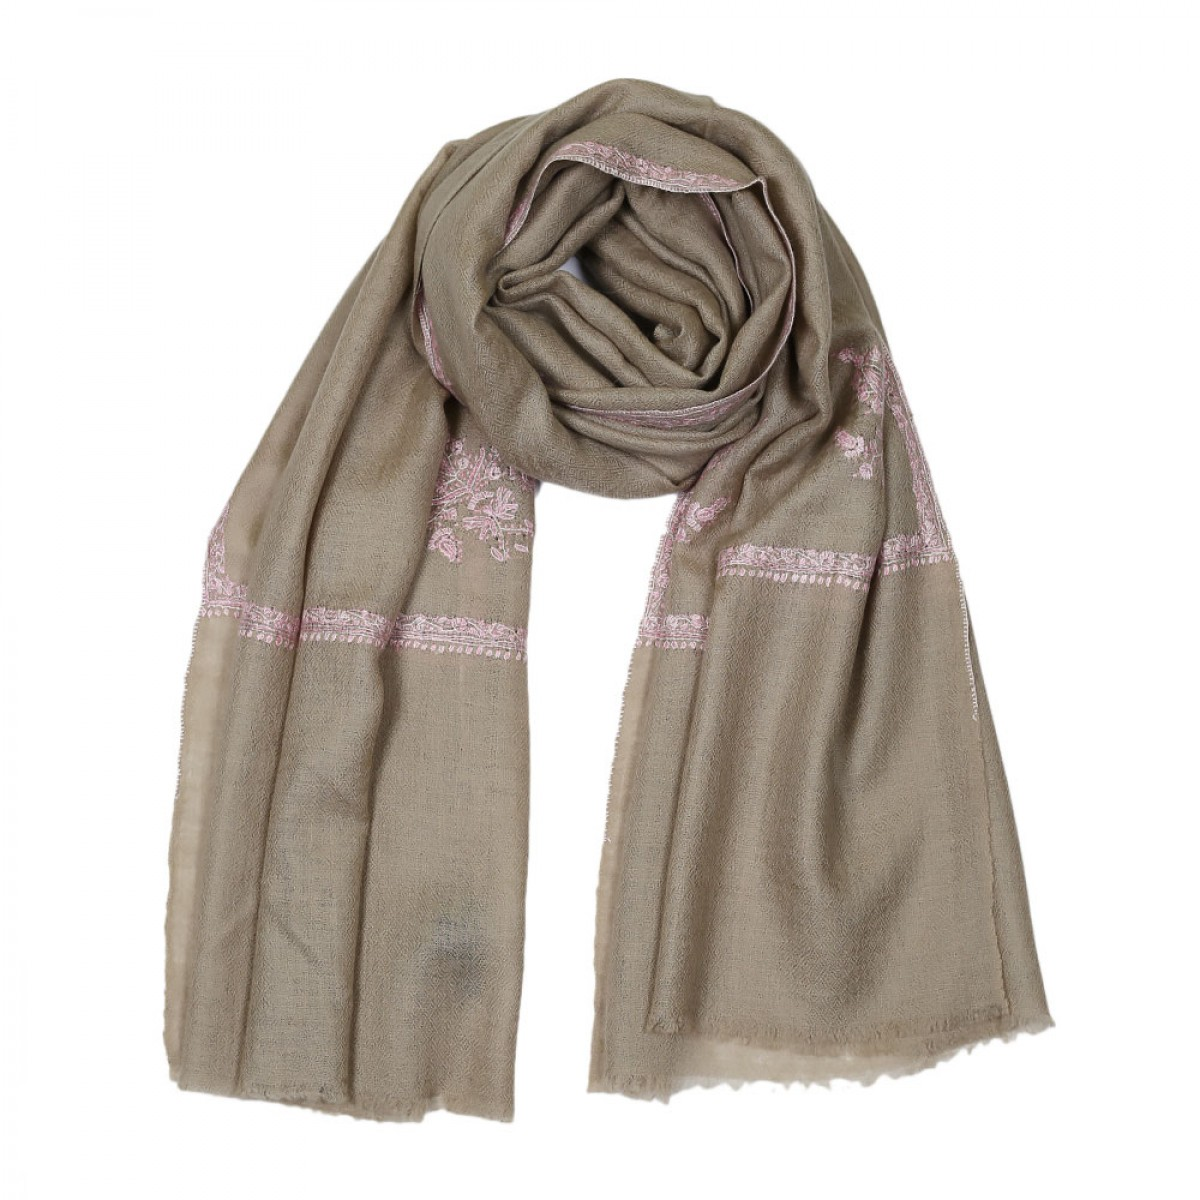 Embroidered Handloom Pashmina Stole - Natural Baby Pink